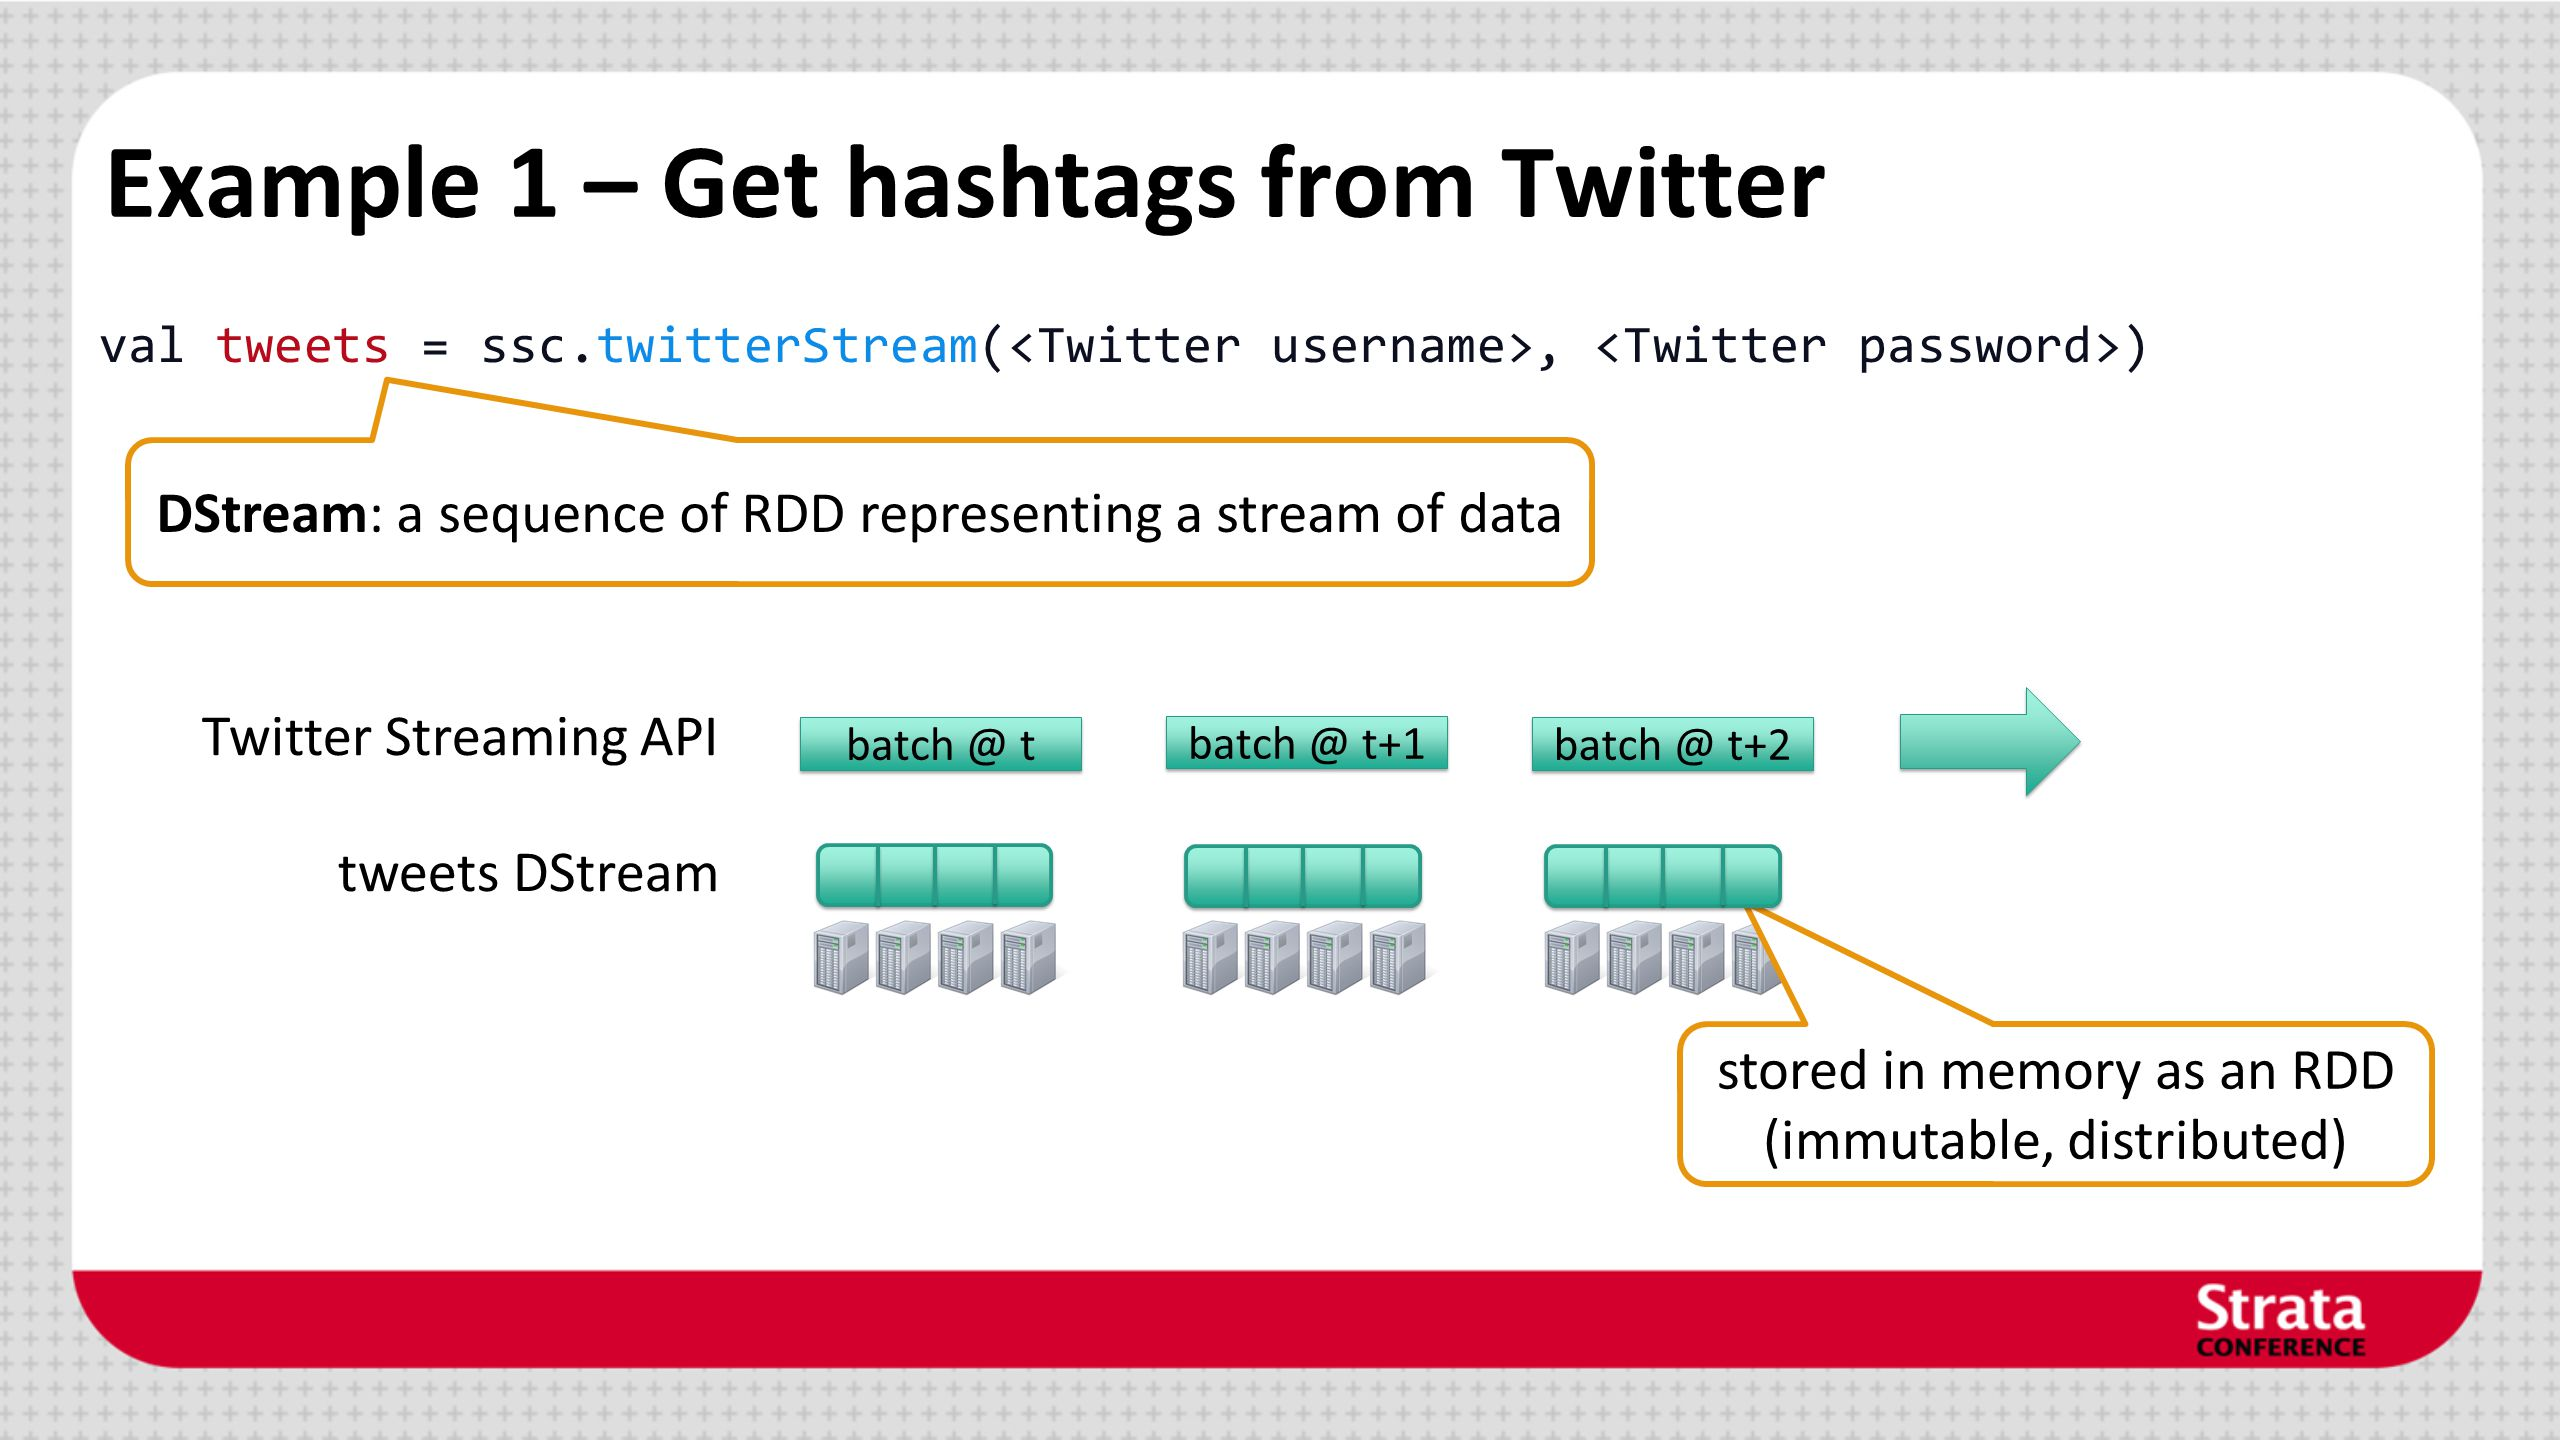 Example 1 – Get hashtags from Twitter val tweets = ssc.twitterStream(, ) DStream: a sequence of RDD representing a stream of data batch @ t+1 batch @